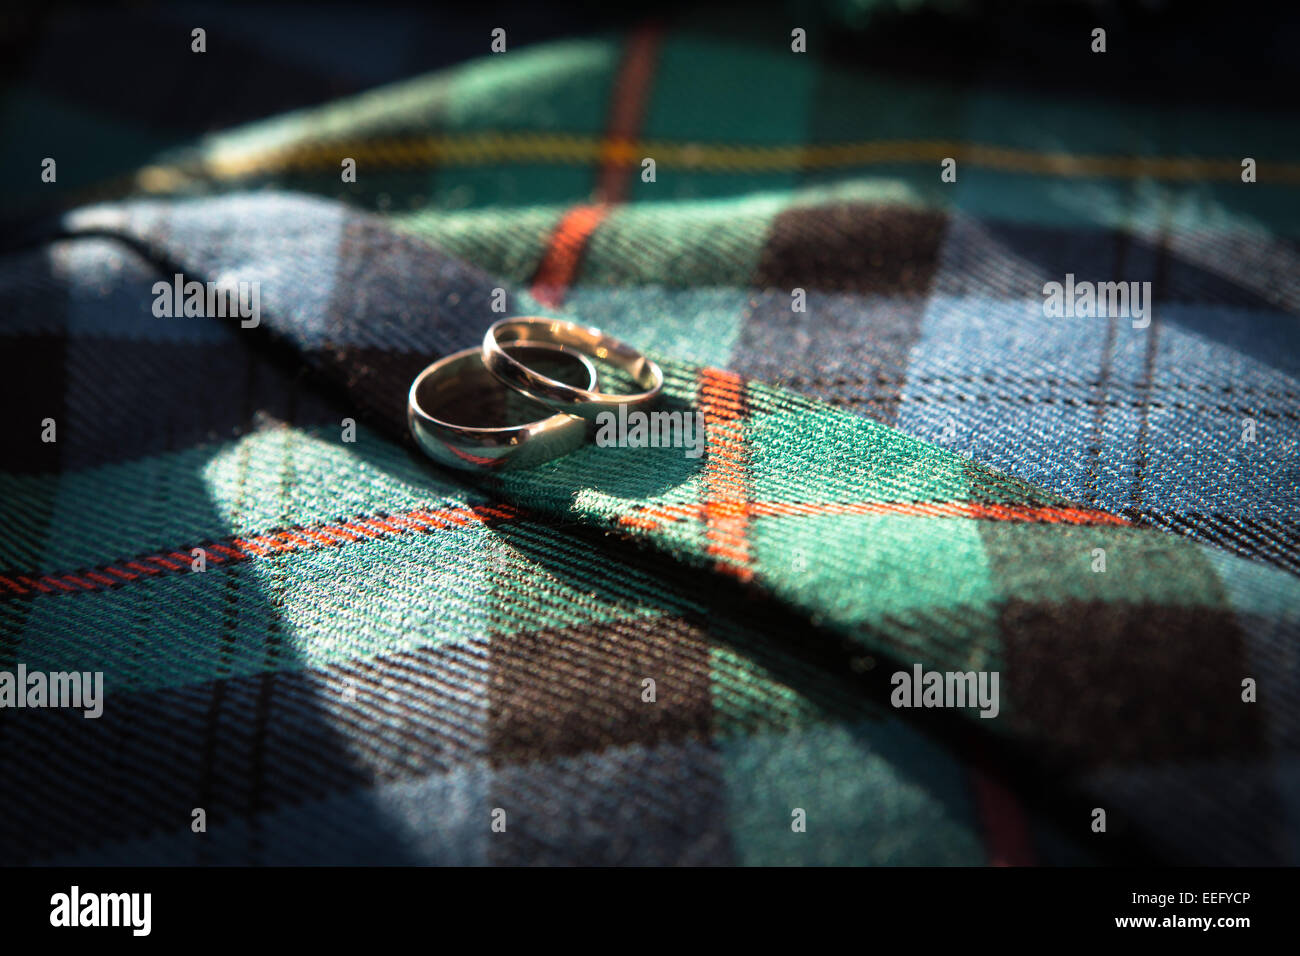 wedding rings on tartan material - Stock Image